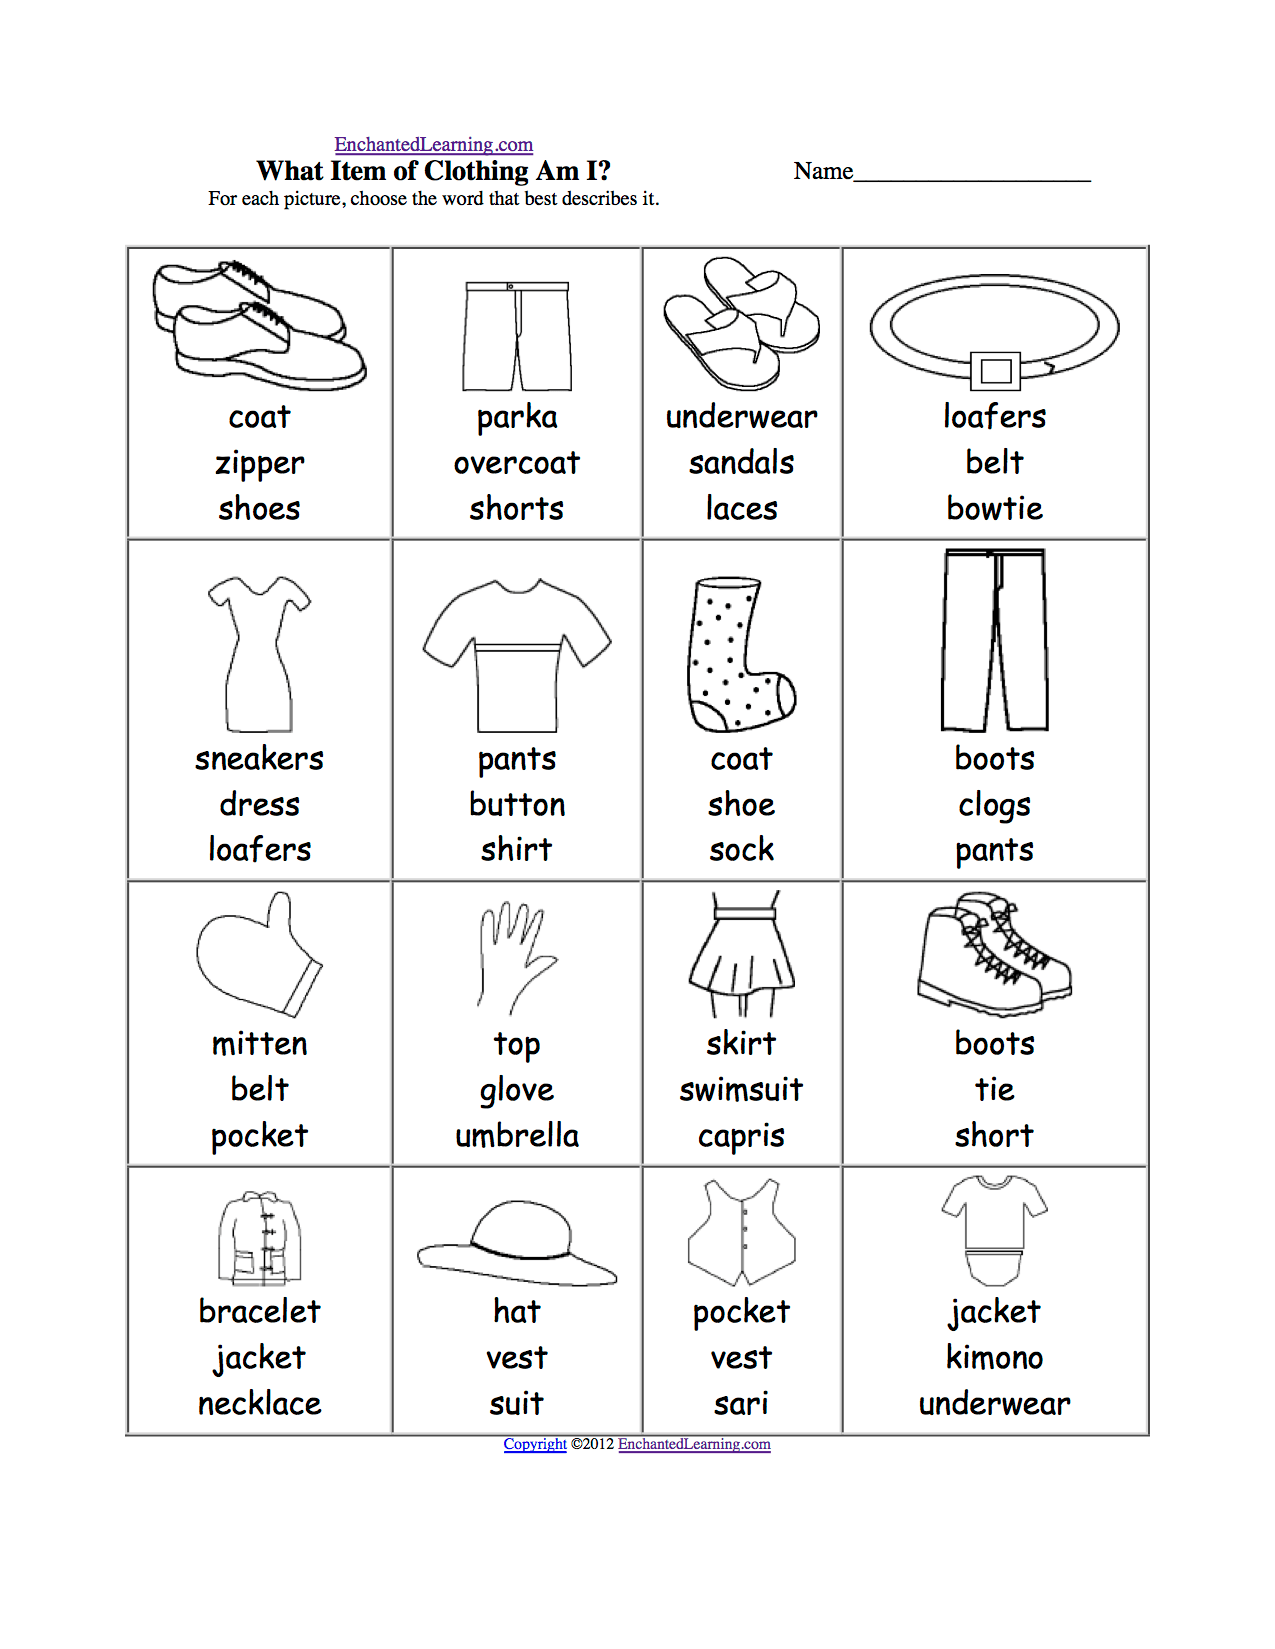 Clothes At Enchantedlearning